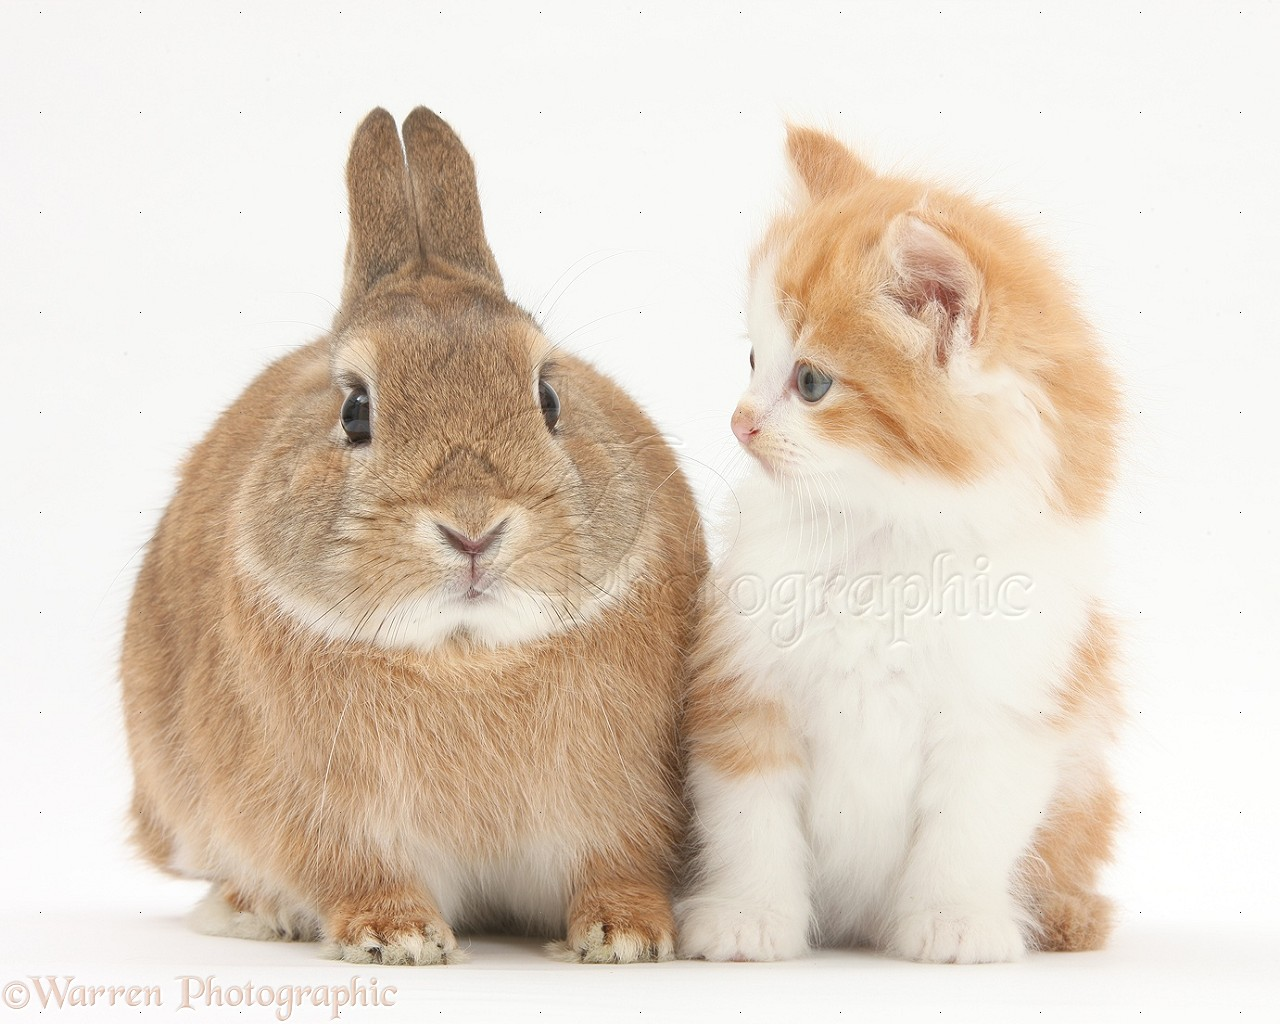 Pets Ginger And White Kitten And Rabbit Photo Wp28036